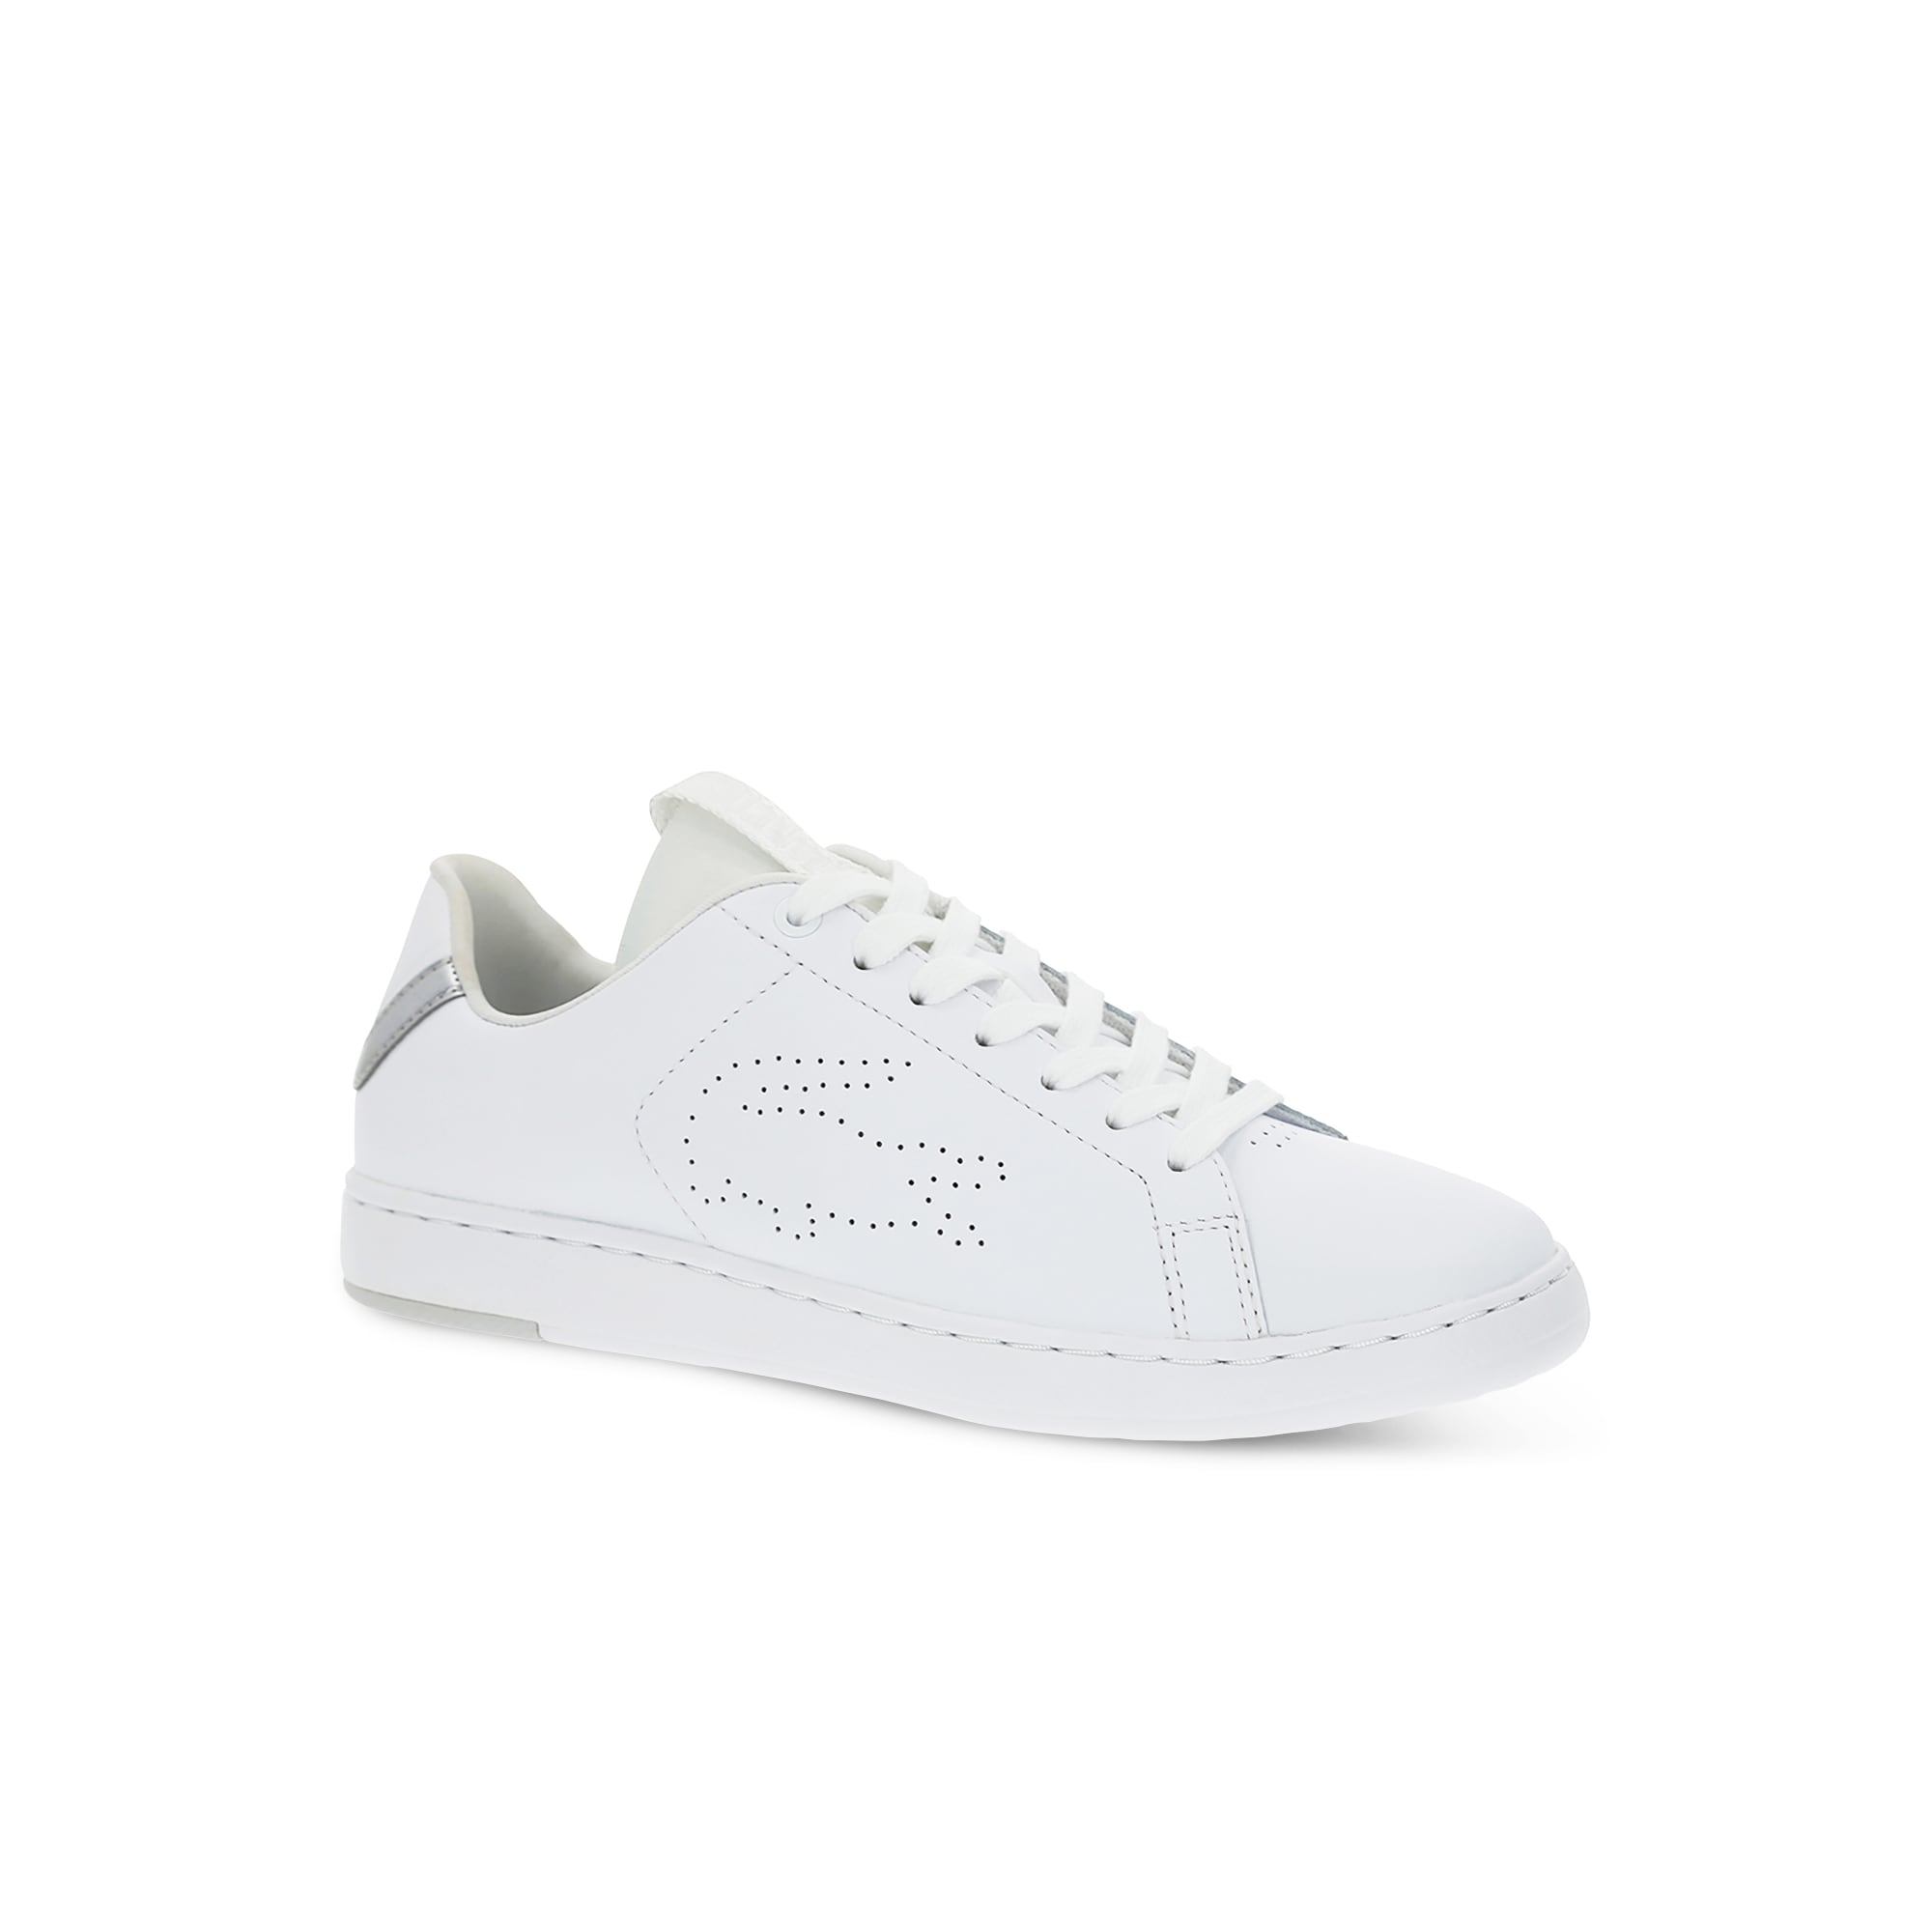 623a7252aaf823 Women s Carnaby Evo Light-WT Leather Sneakers